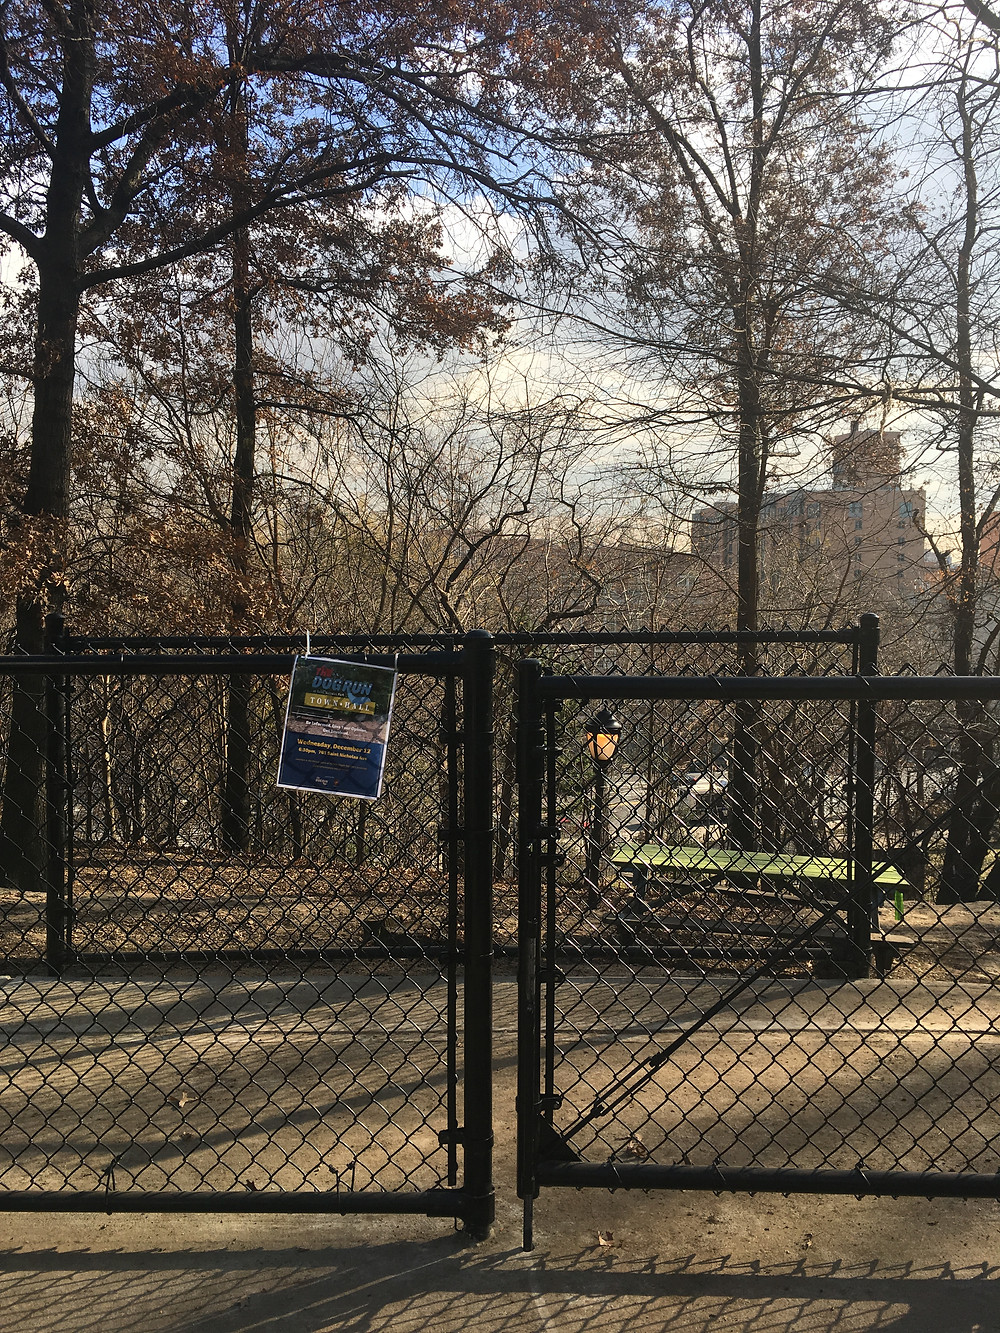 The new entrance at the St. Nicholas Park Dog Run